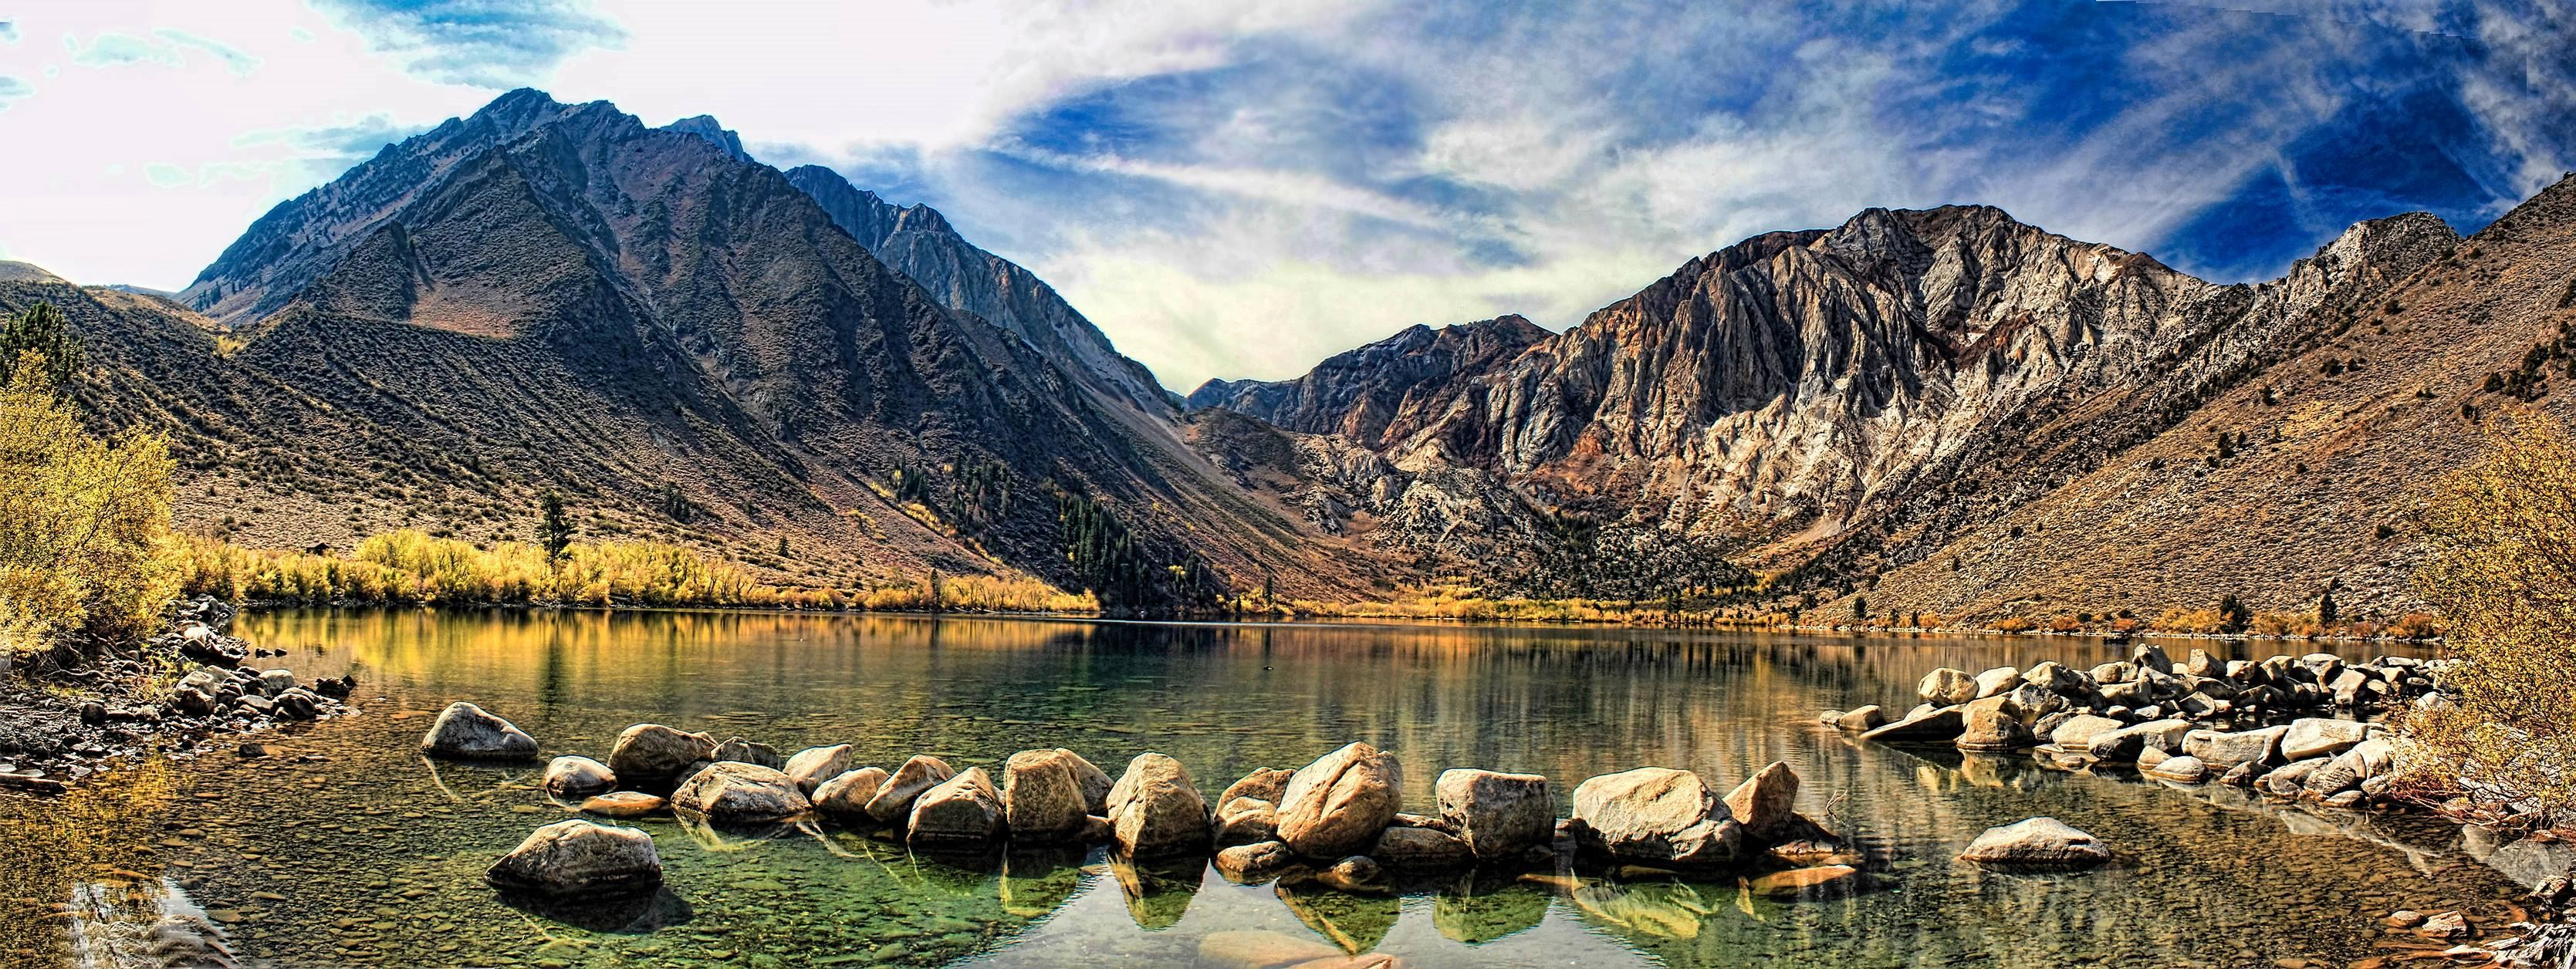 M And M Events at Convict Lake Resort - 1